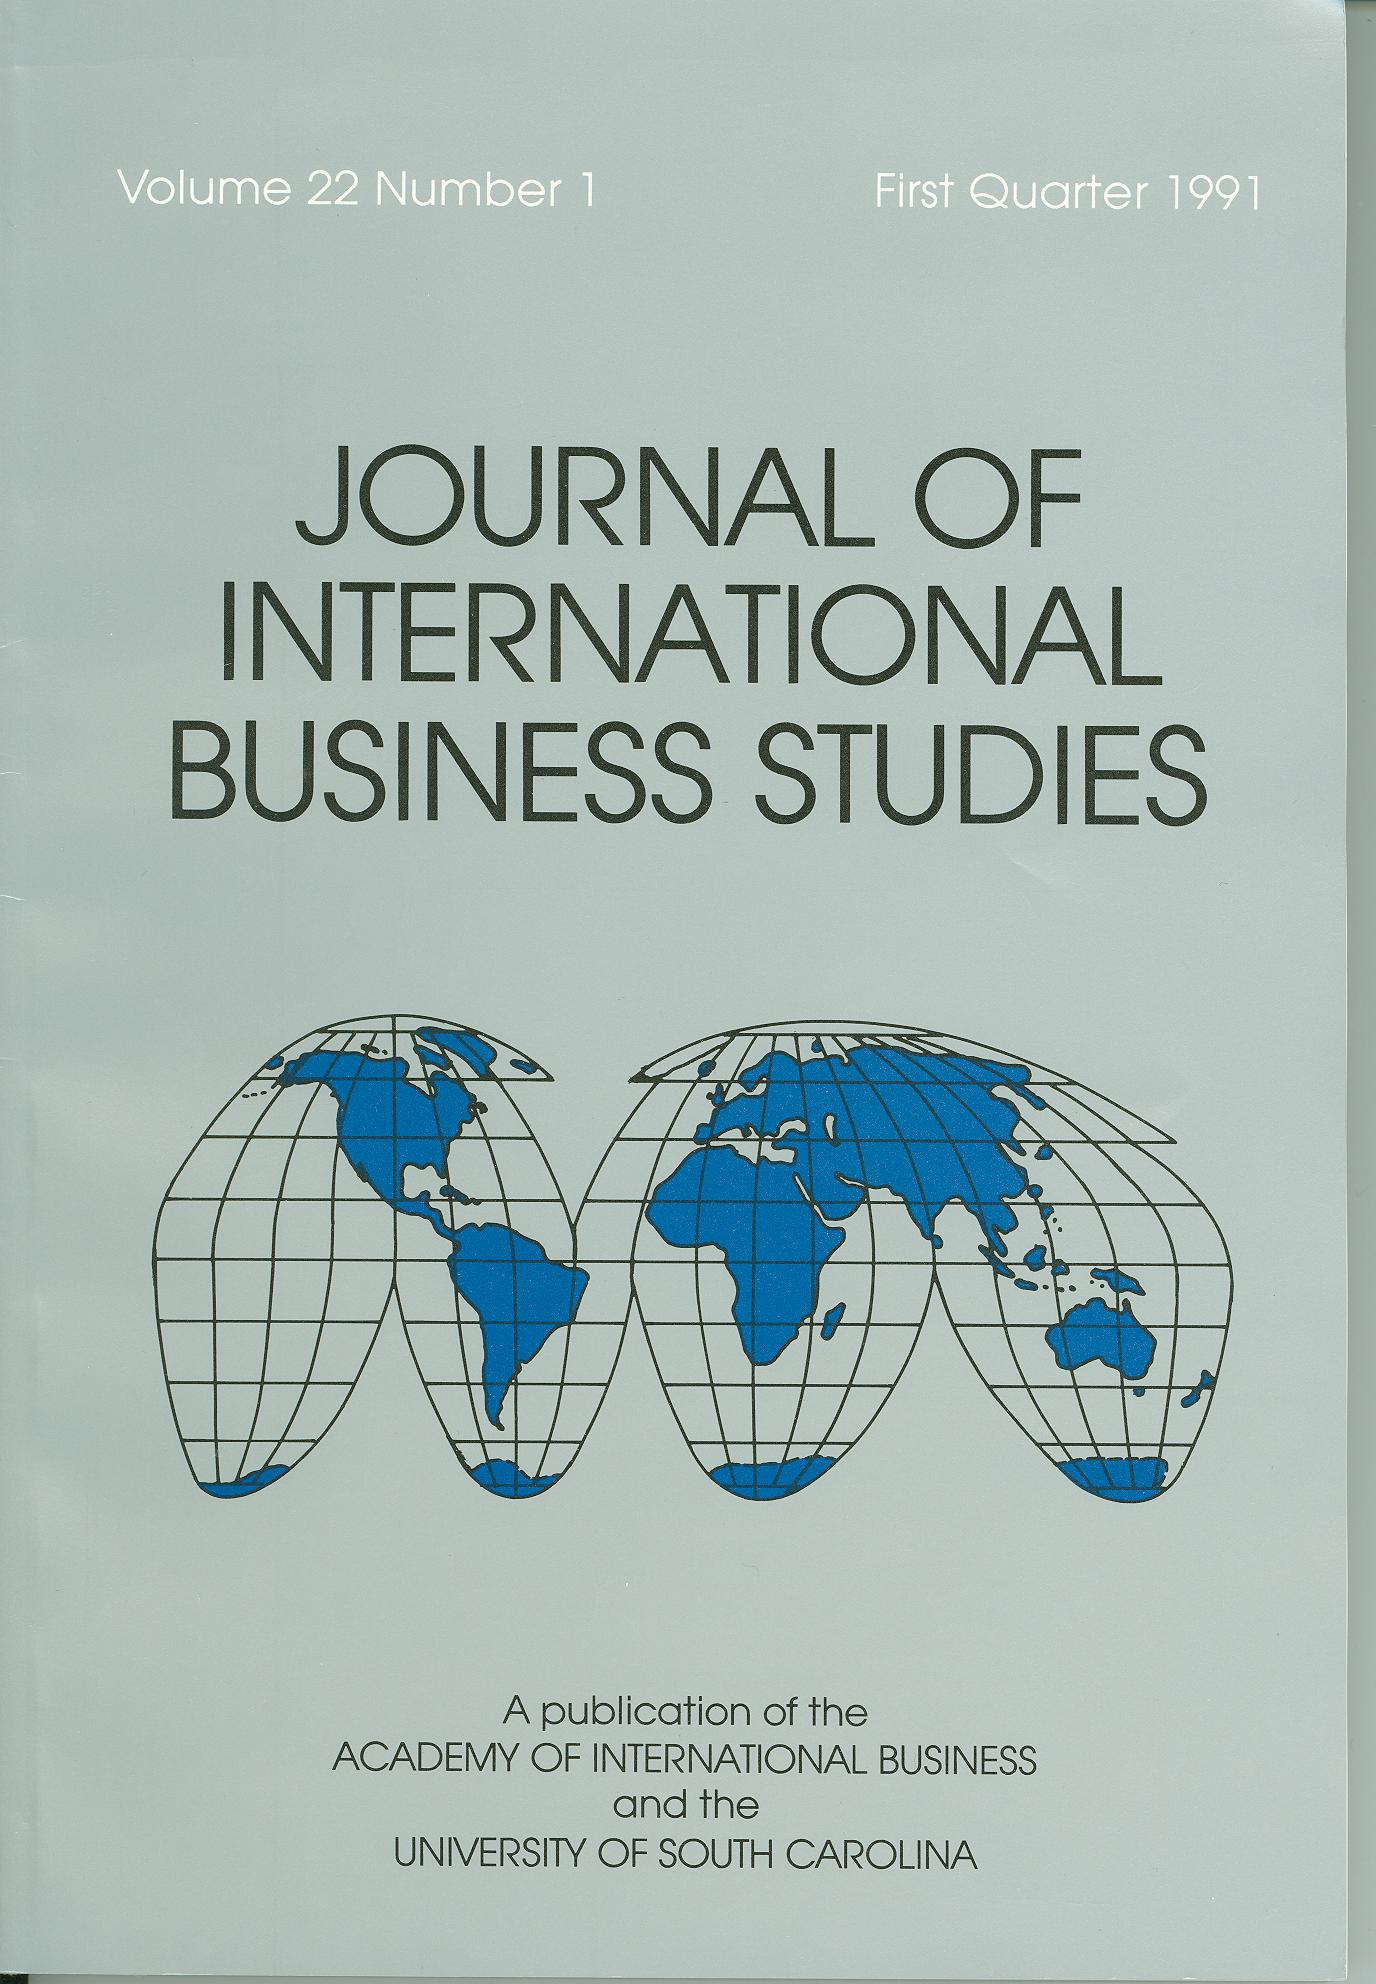 Cover design from a 1991 issue of JIBS